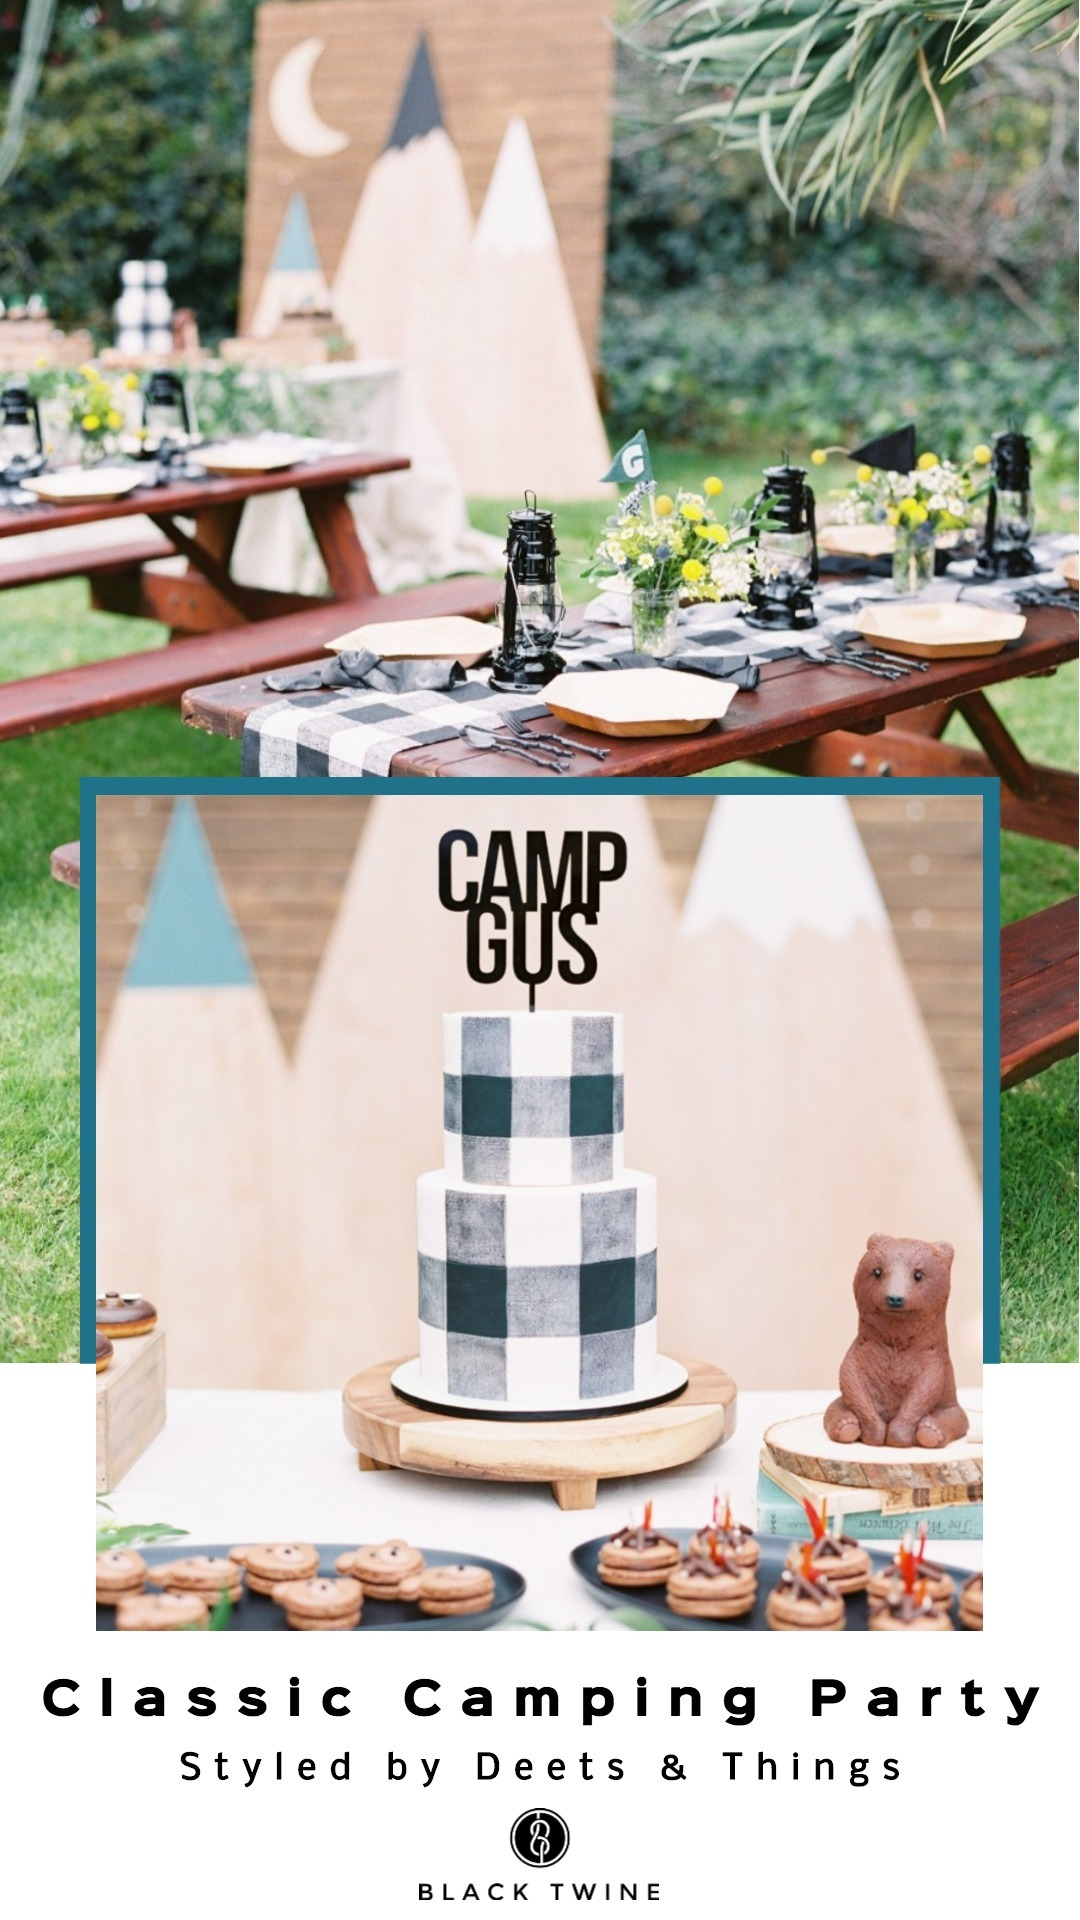 How to Host a Classic Camping Party Styled by Deets & Things | Black Twine